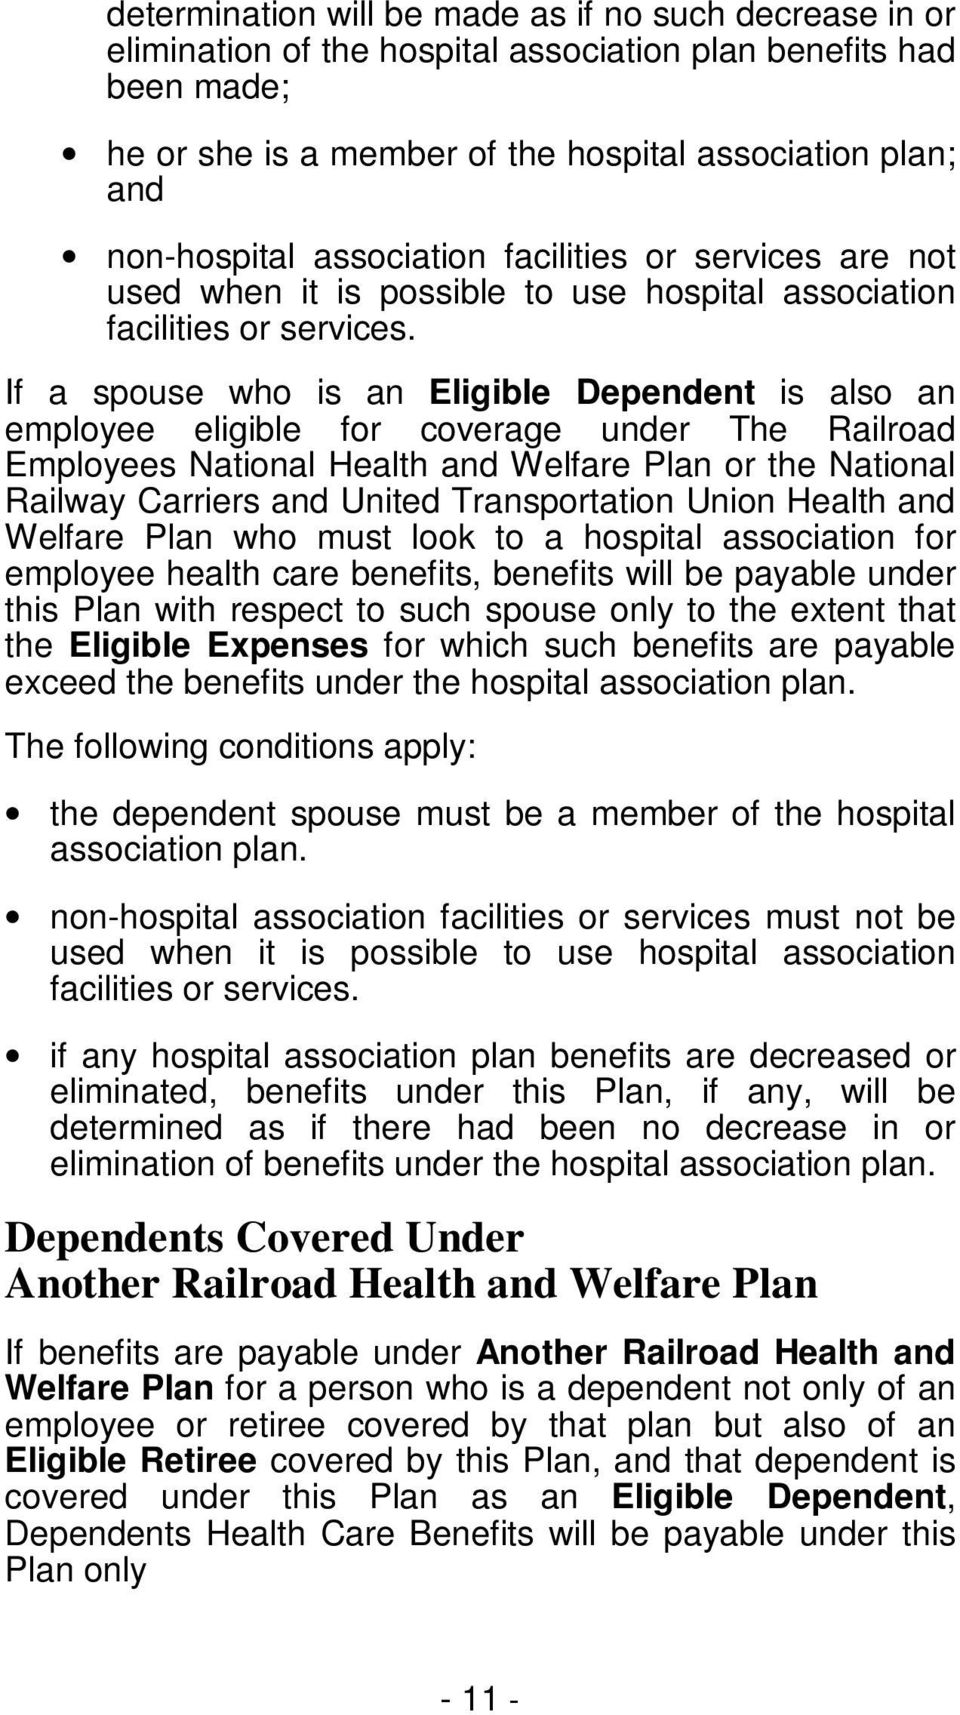 national railway carriers united trans union health welfare plan